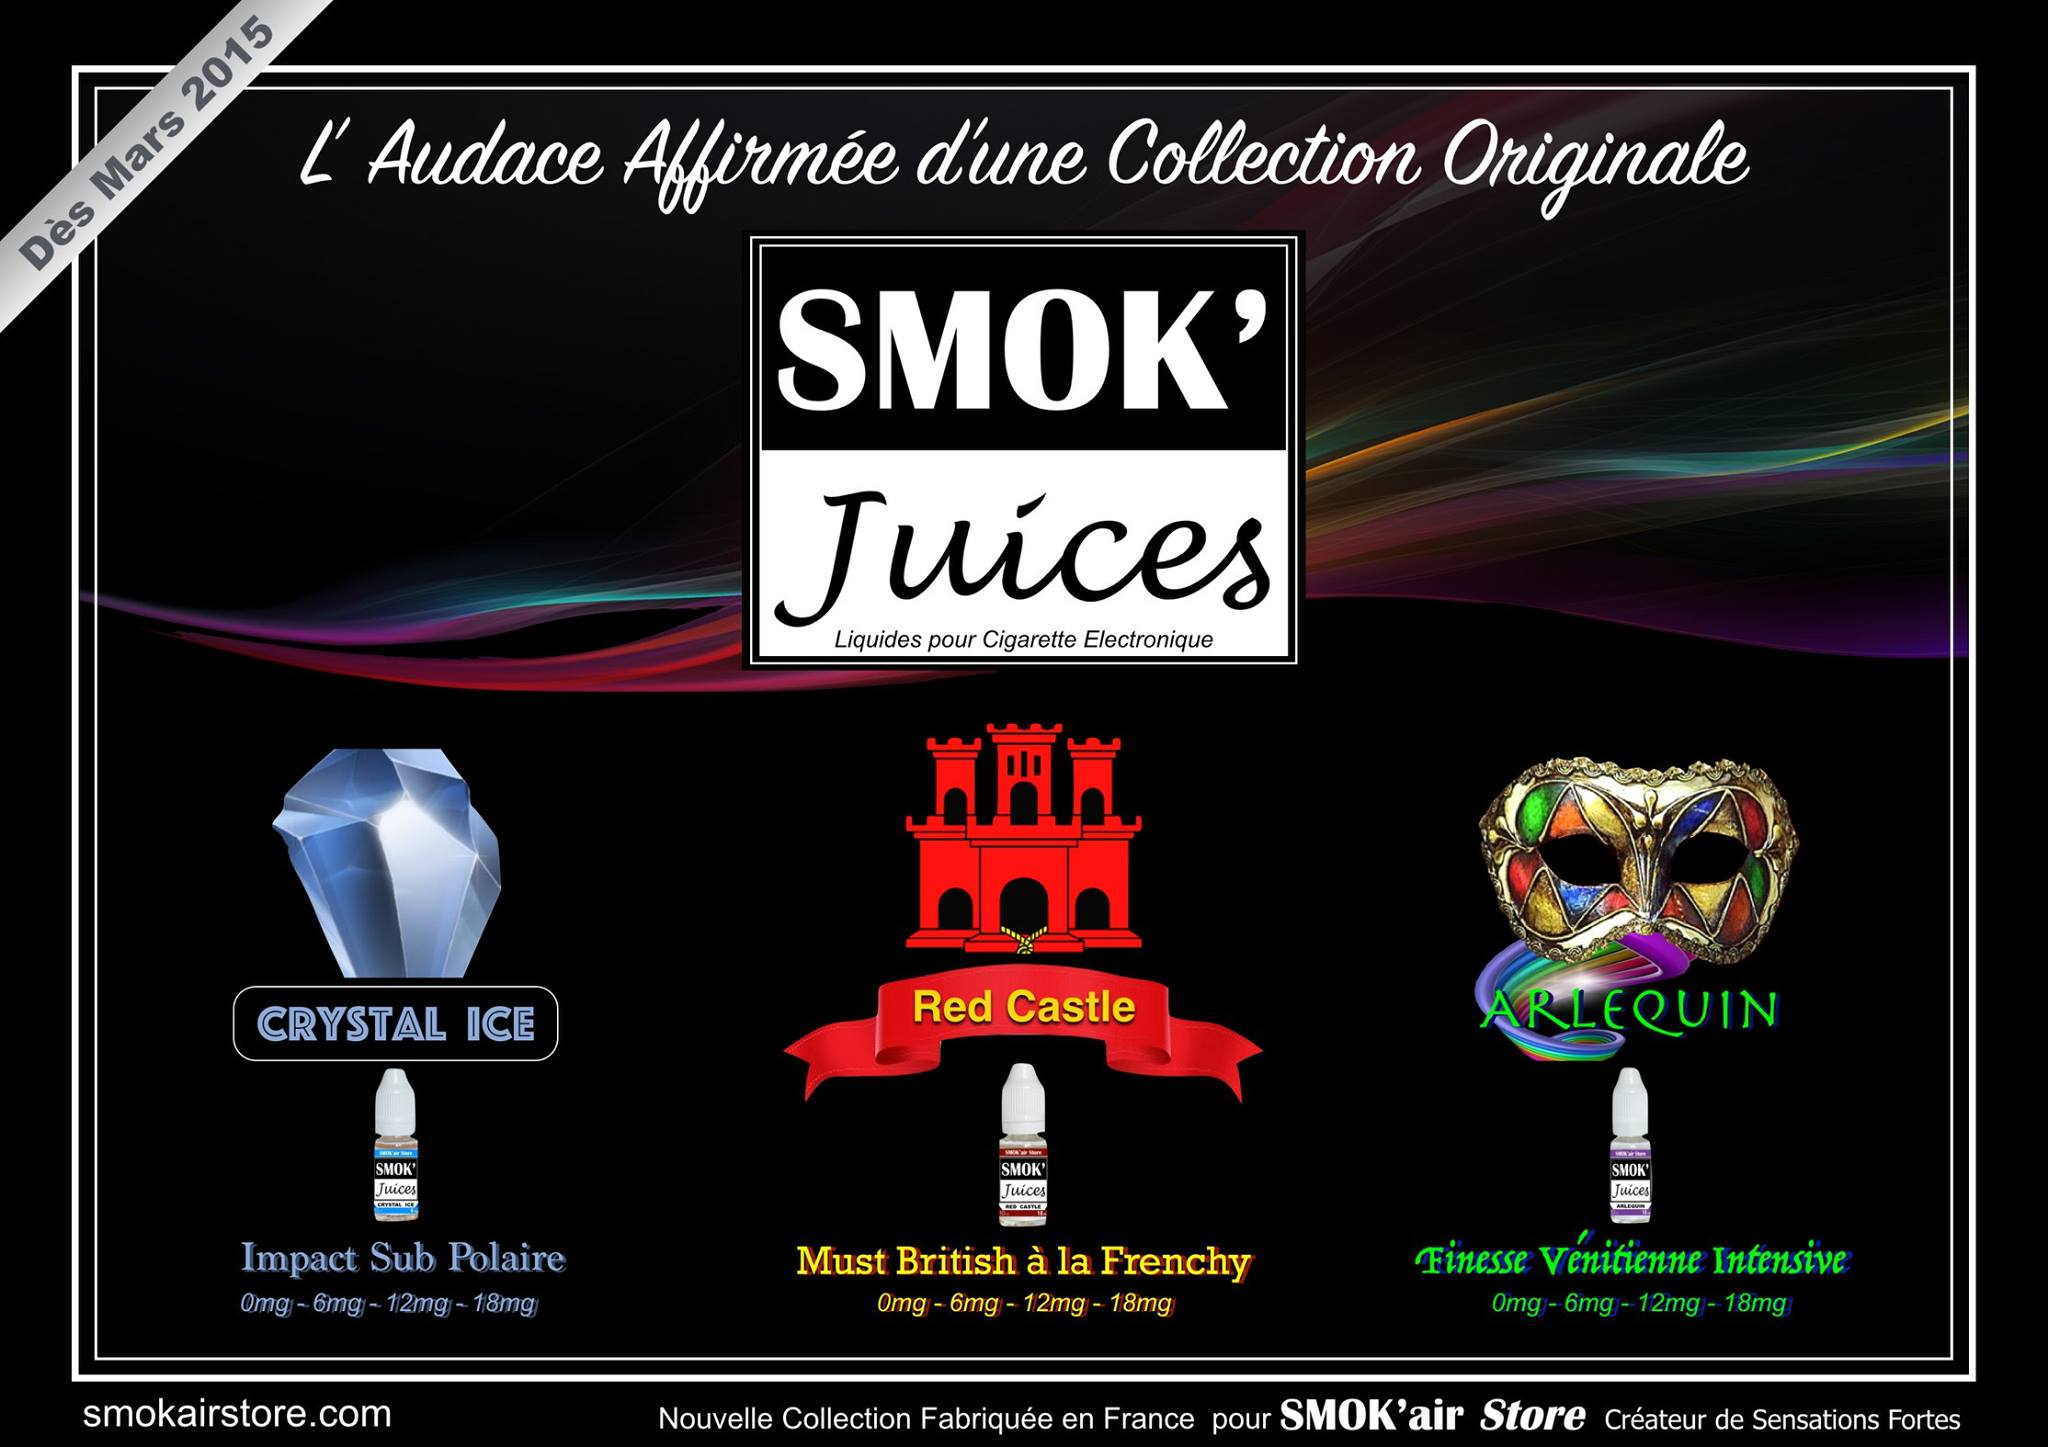 smok'air-store-red-castle-arlequin-chrystal-ice by Aeroma